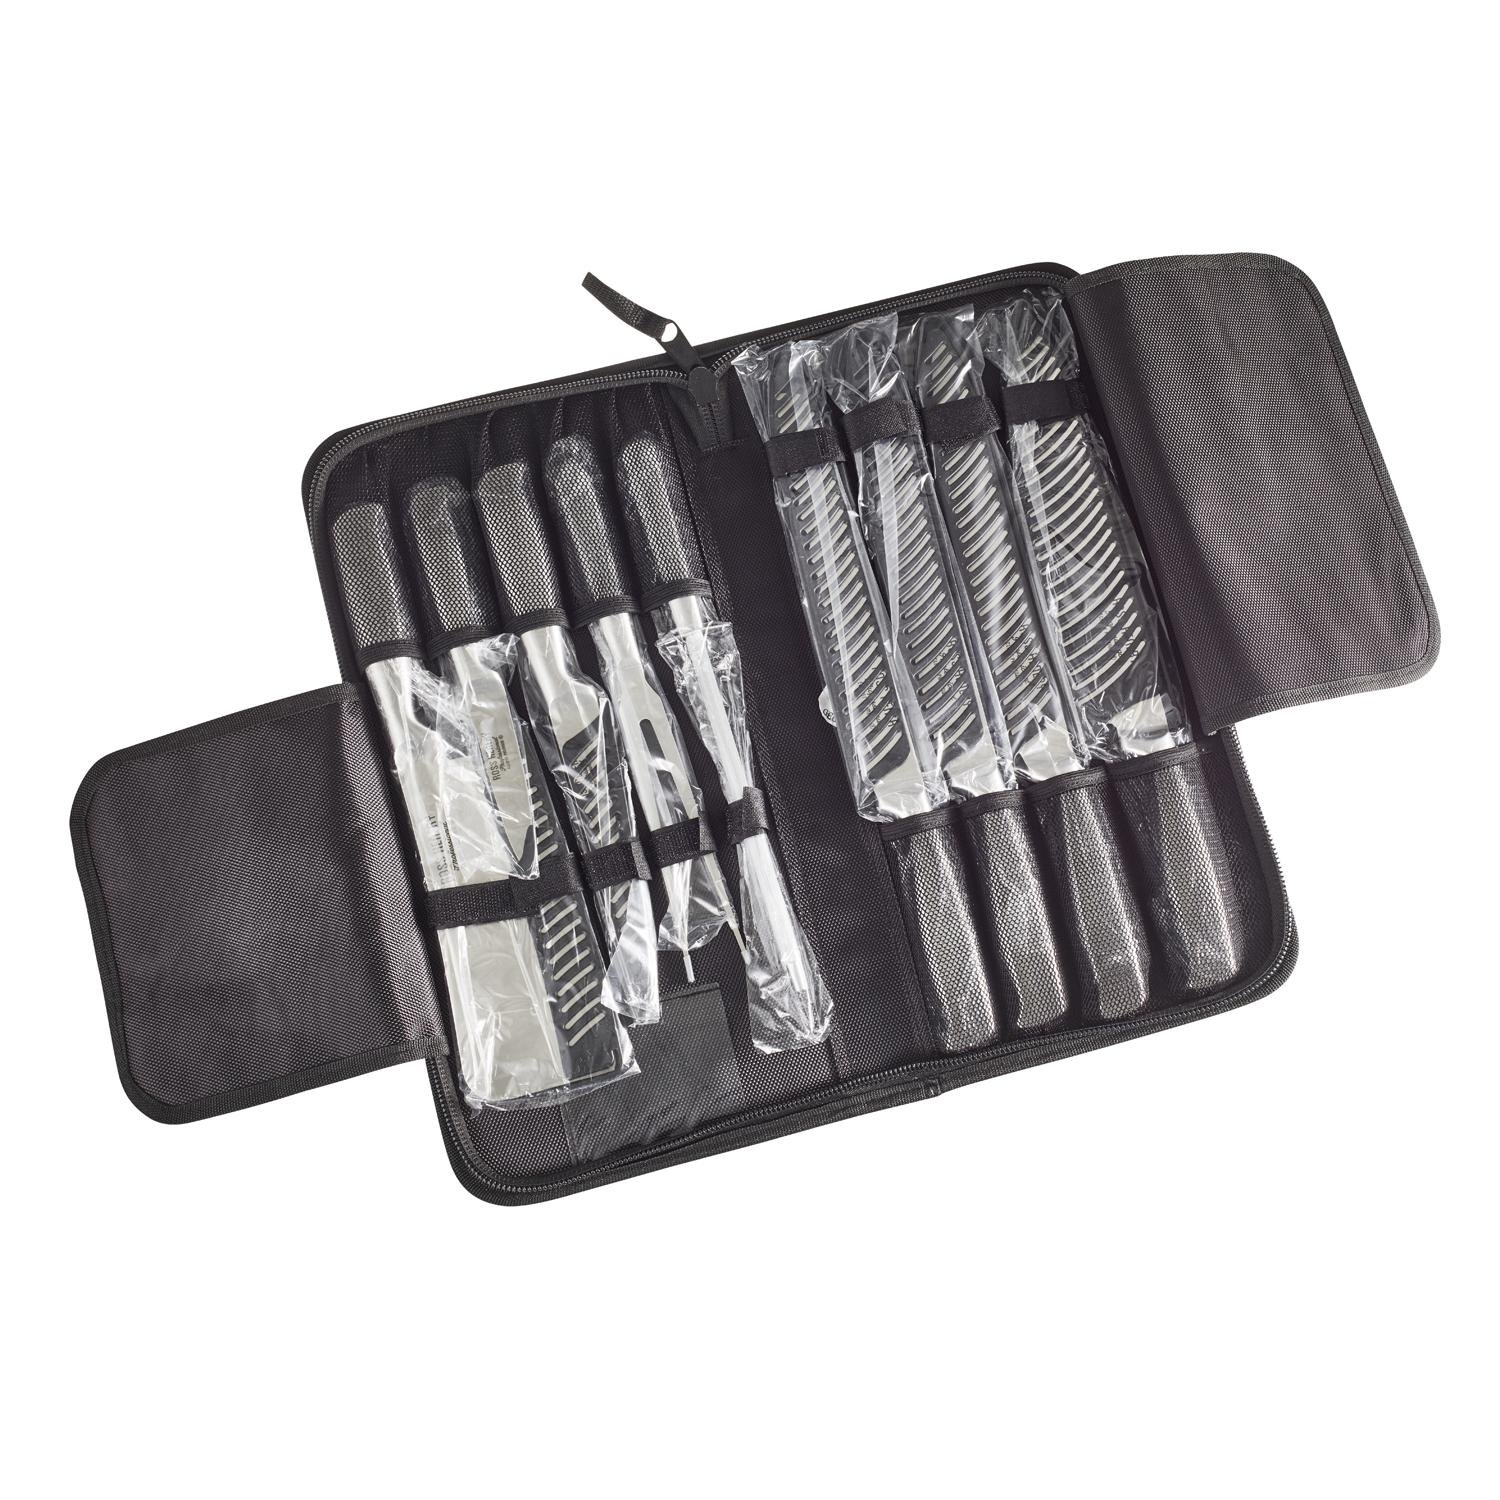 Ross Henery Professional Eclipse Premium stainless Steel 9 piece chefs knife set in carry case by  Ross Henery Professional (Image #3)